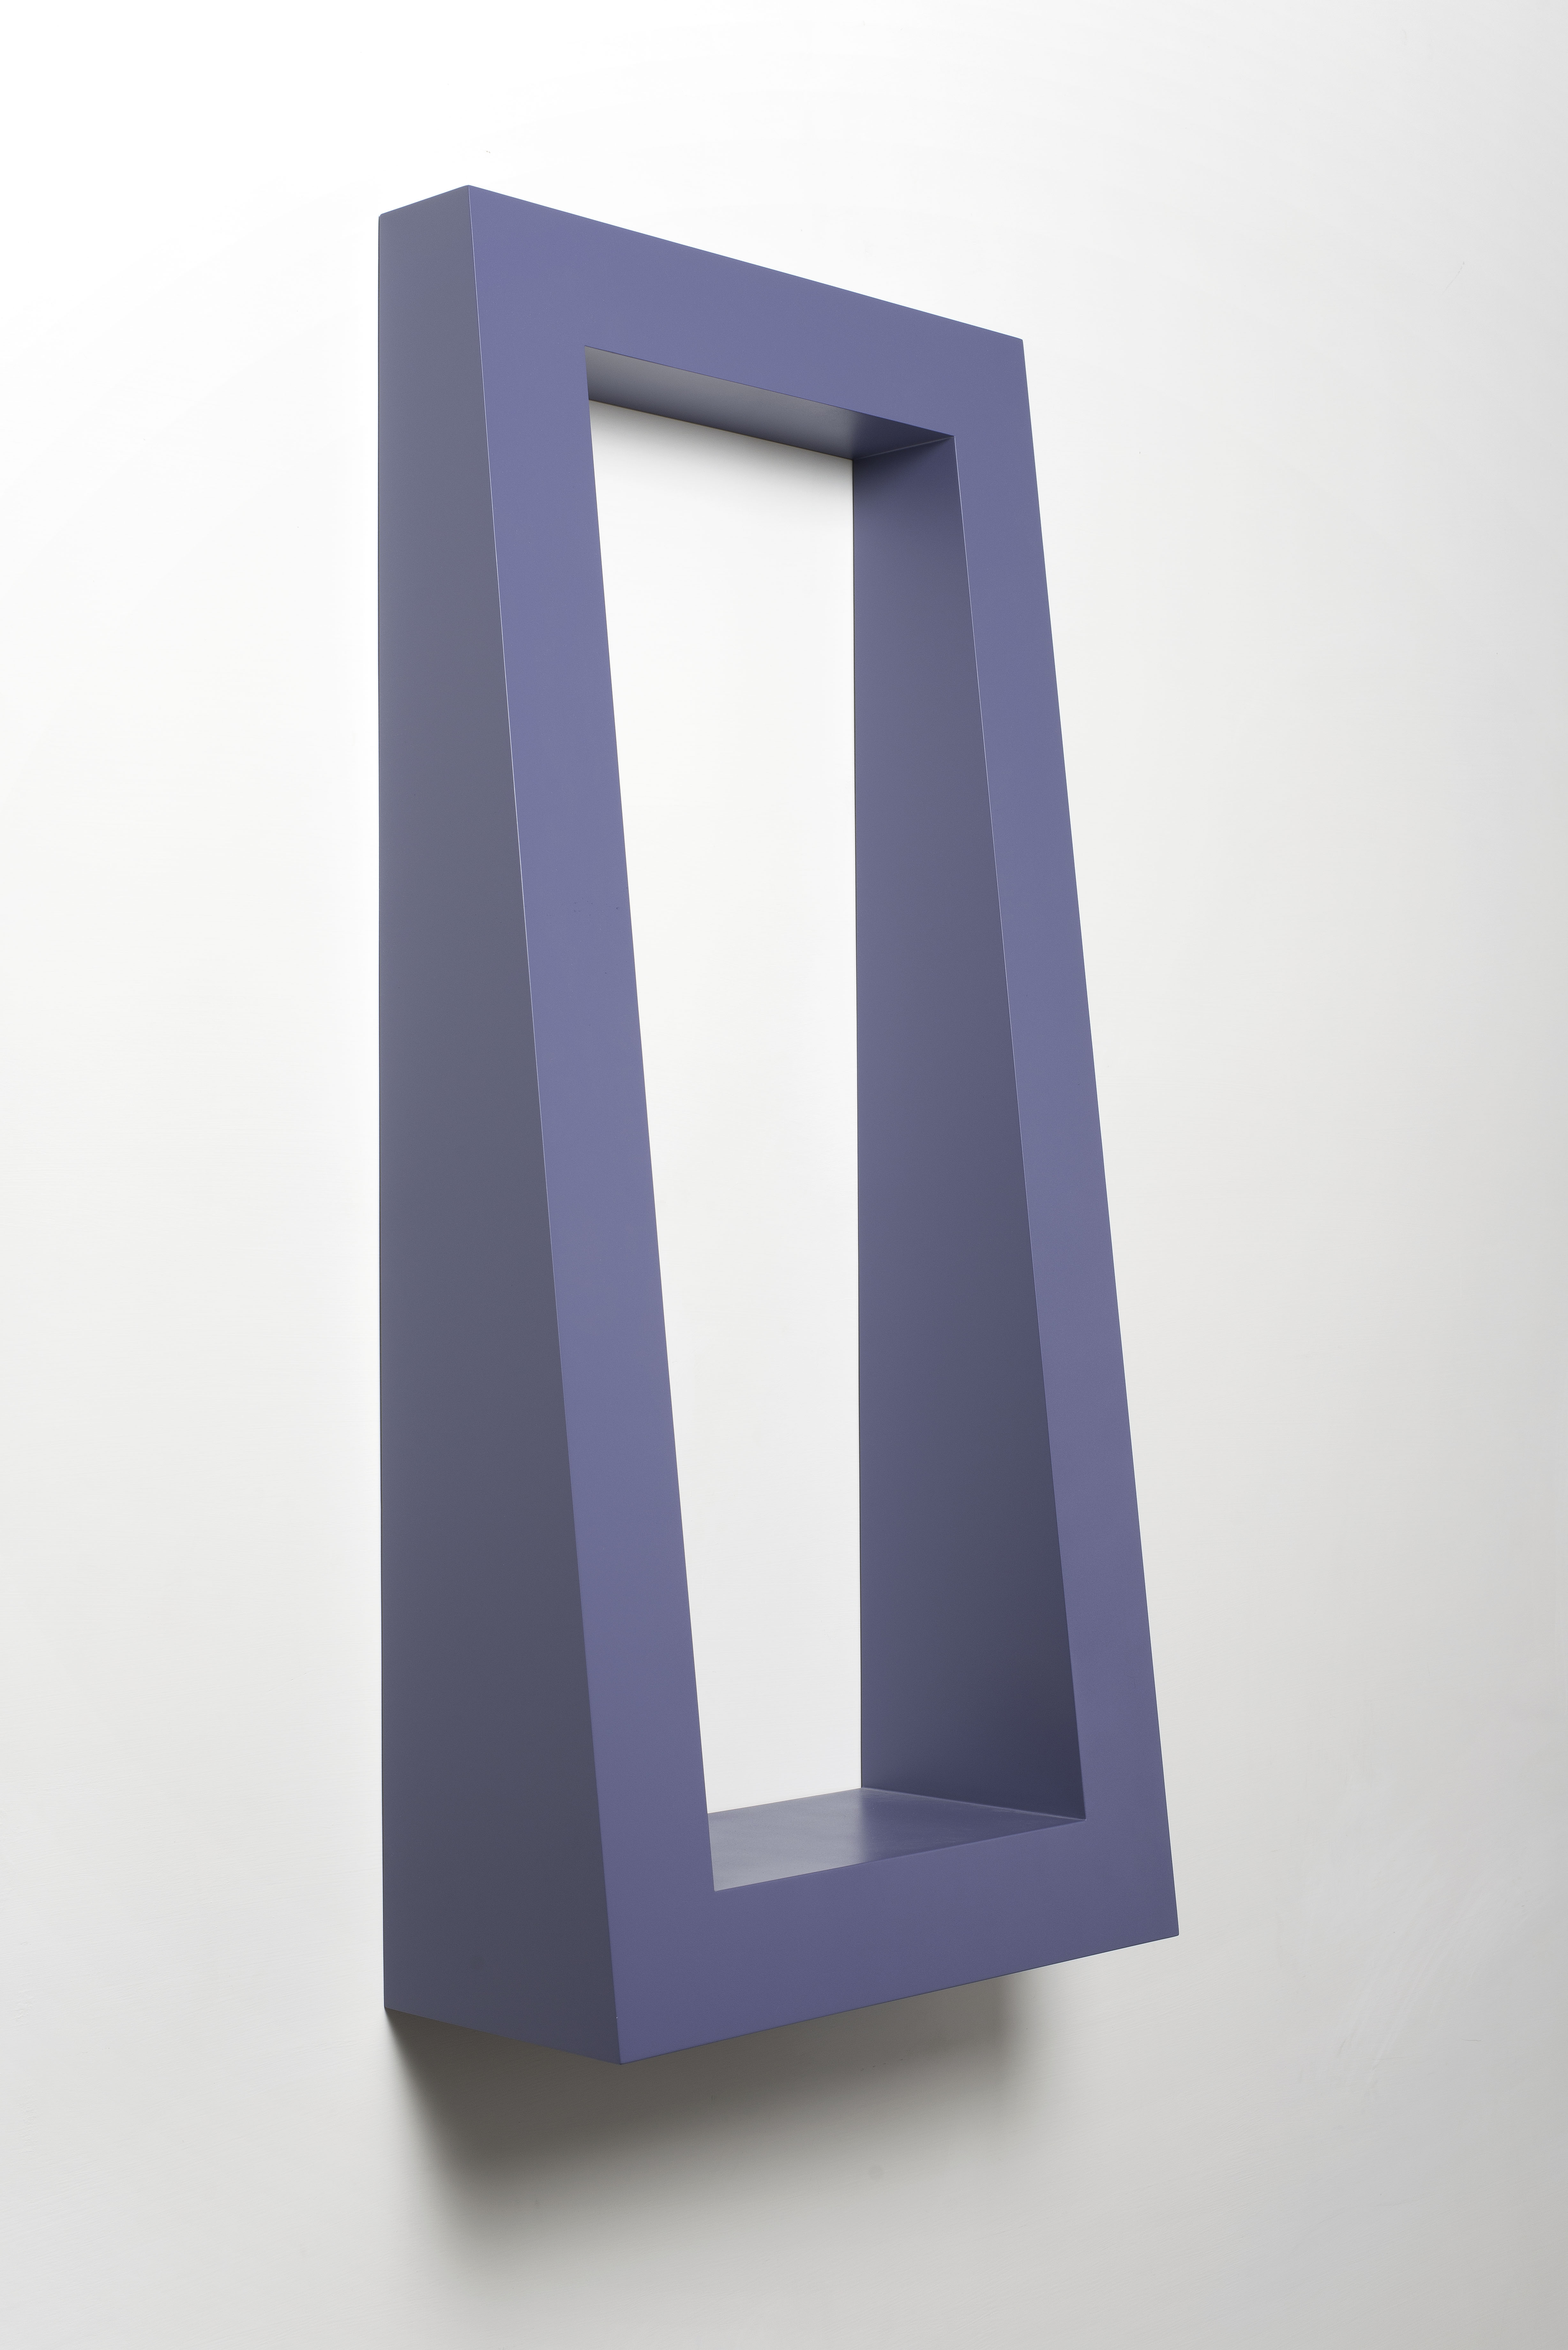 2_FG_Piacentino_DULL VIOLET INCLINED WINDOW OBJECT